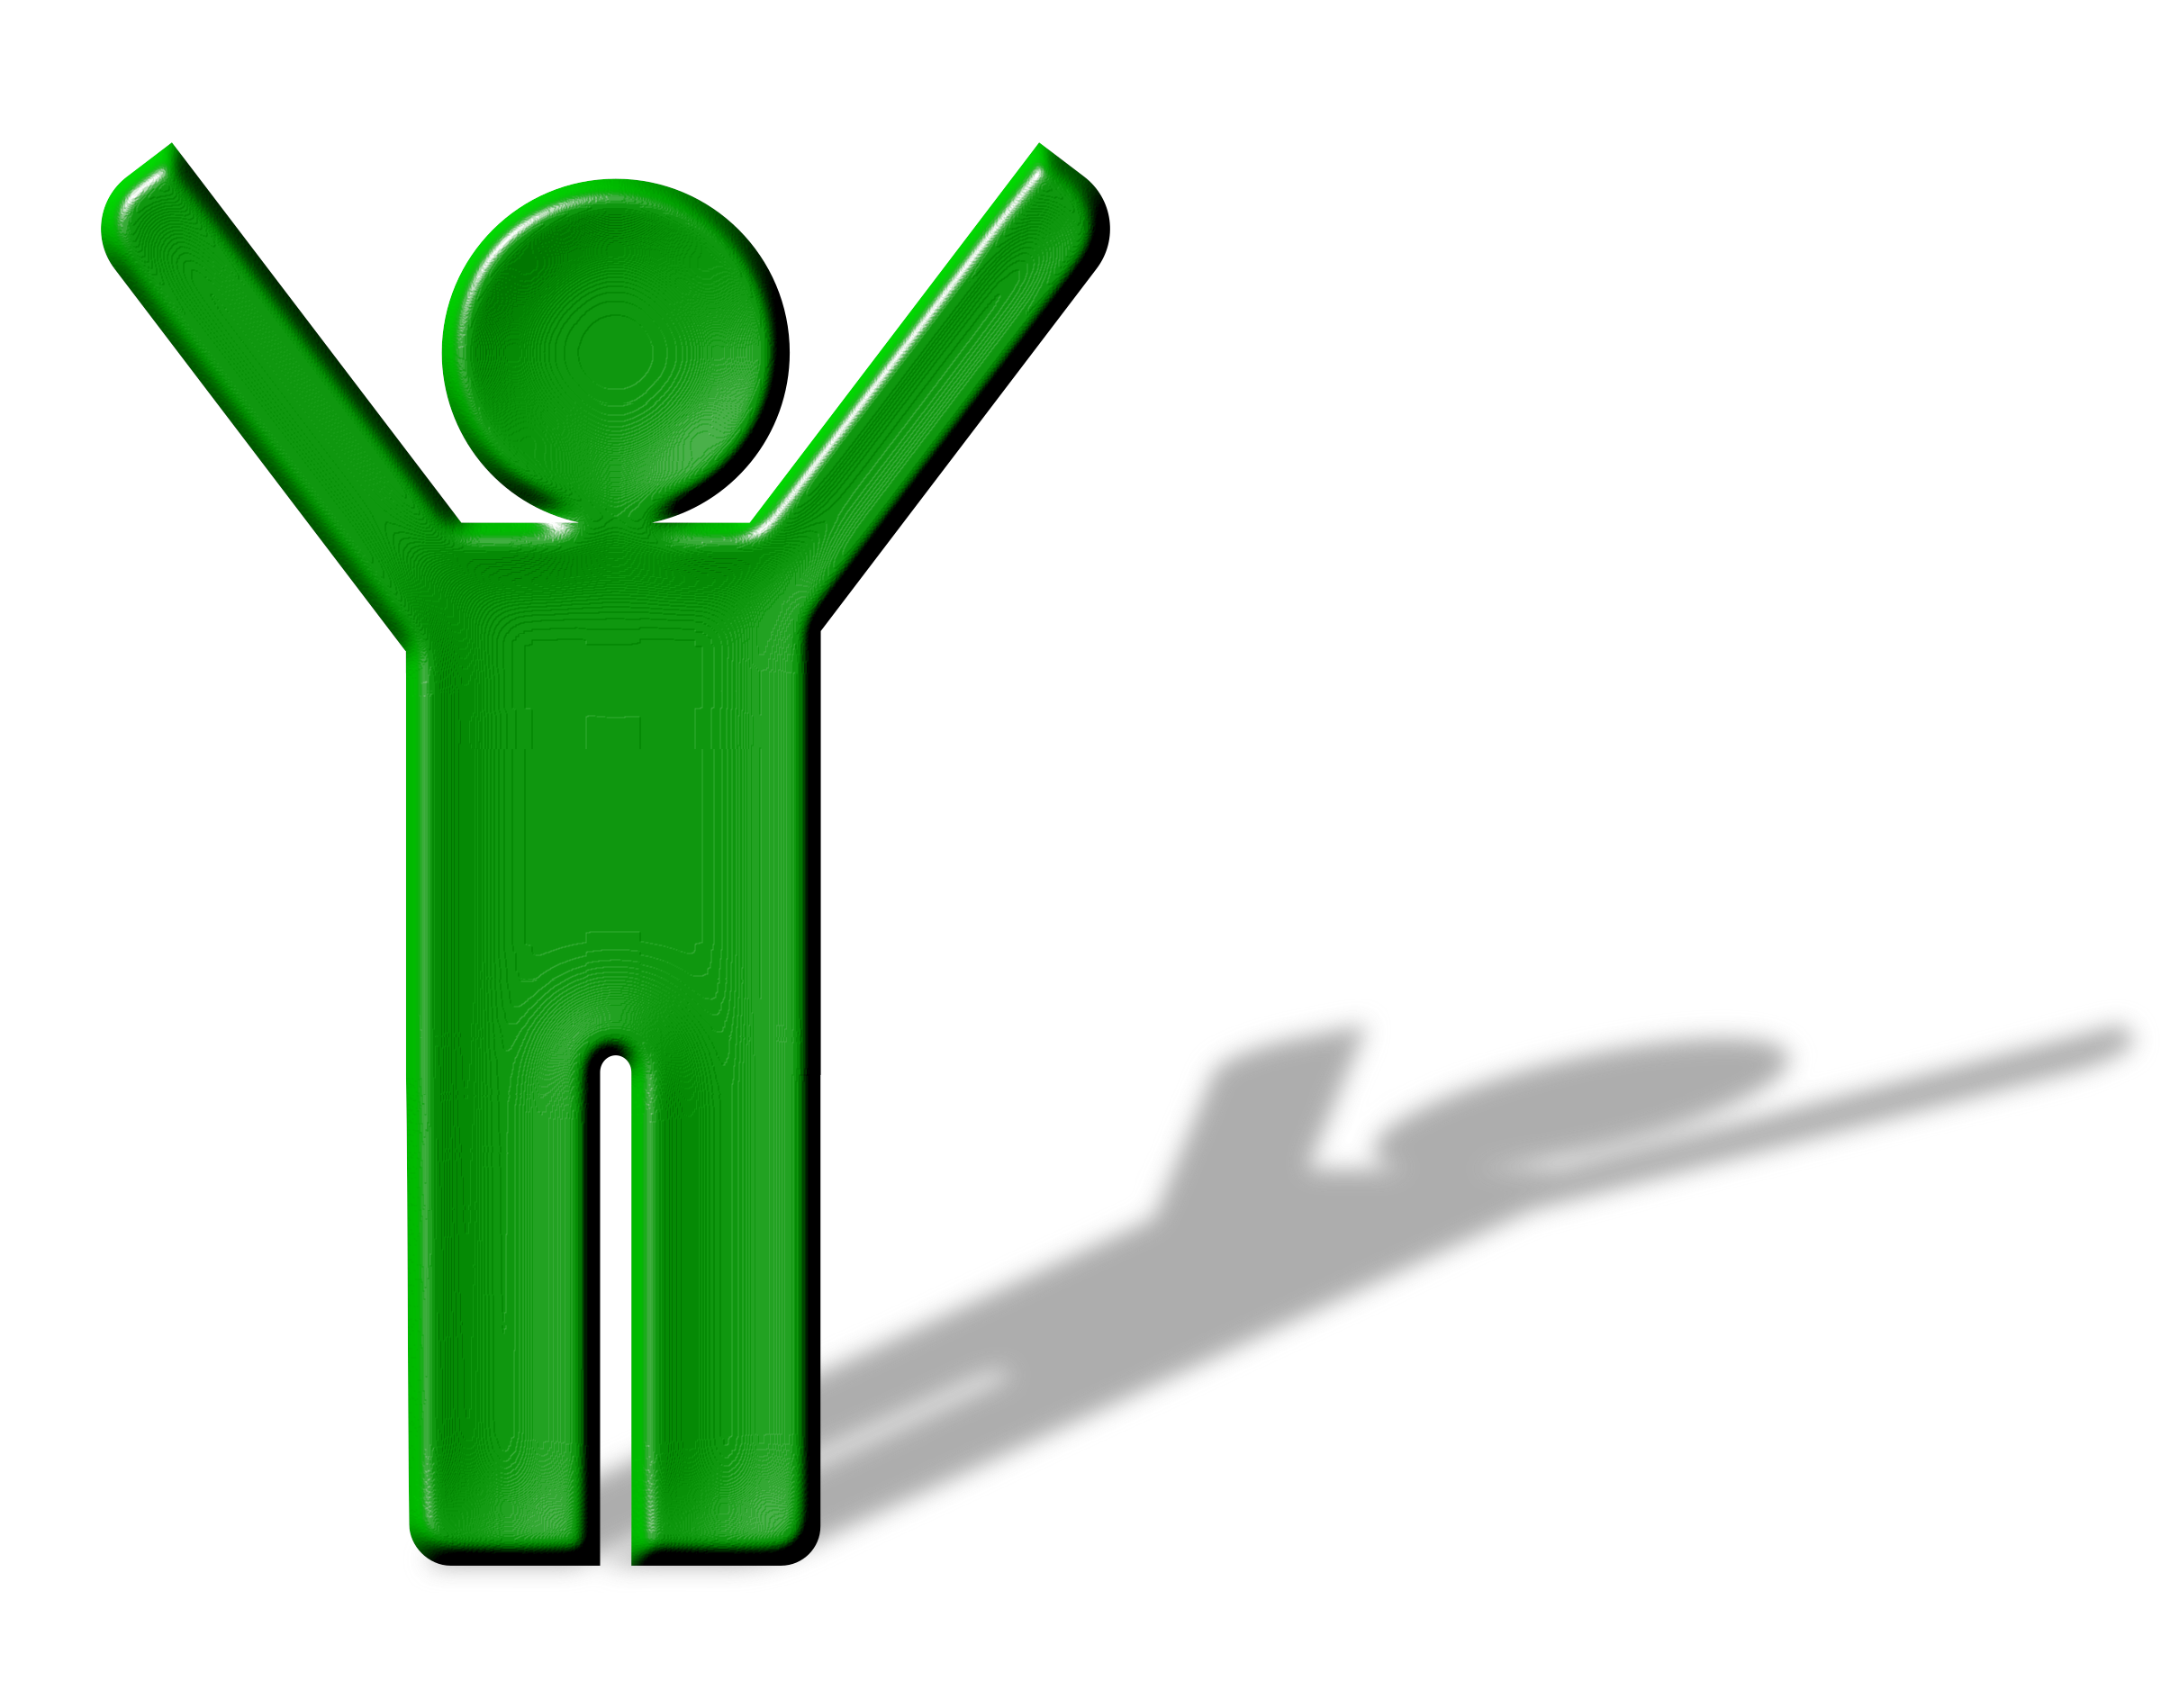 Environment clipart man. Shadow hands up icons